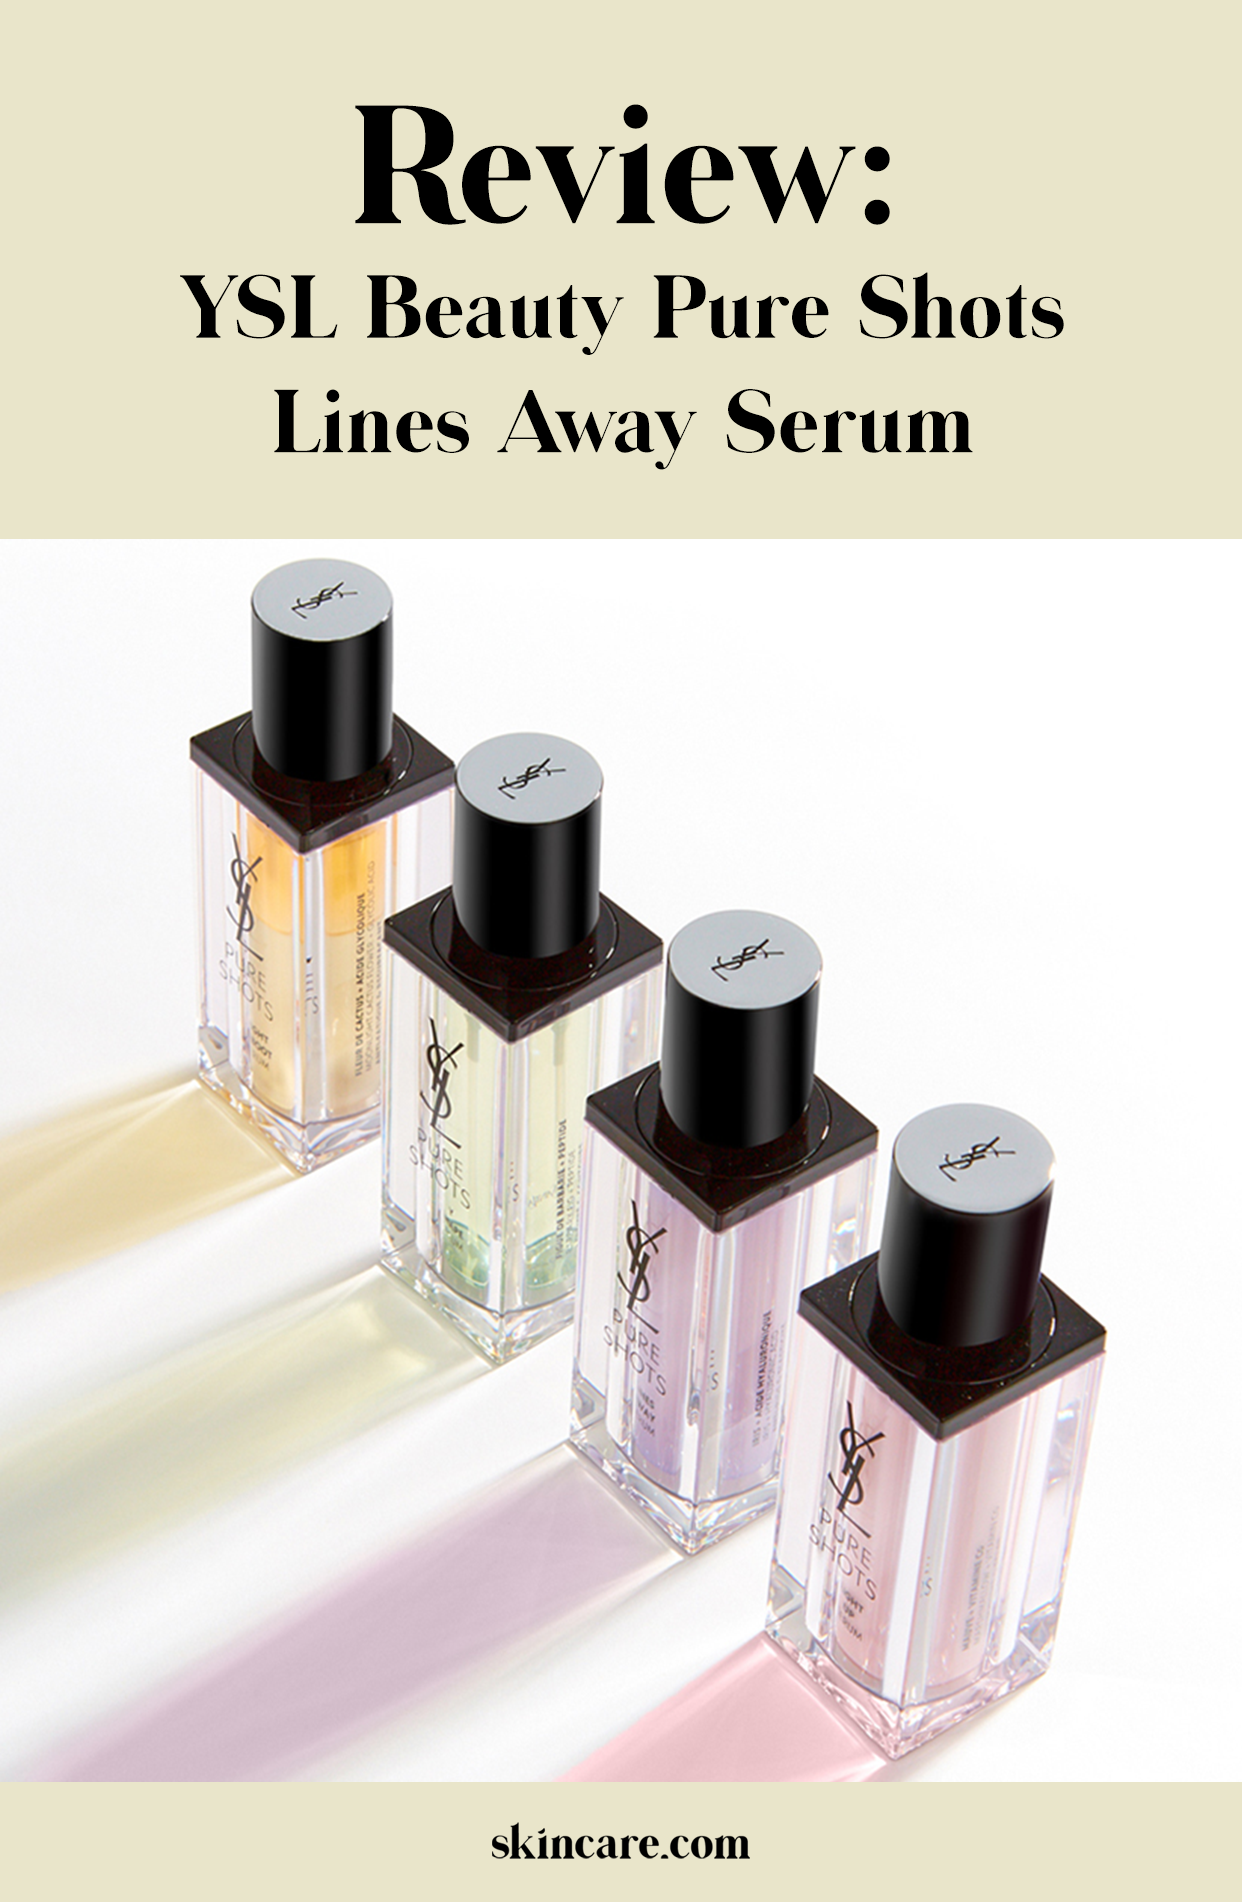 YSL Beauty Pure Shots Lines Away Serum Review Skincare